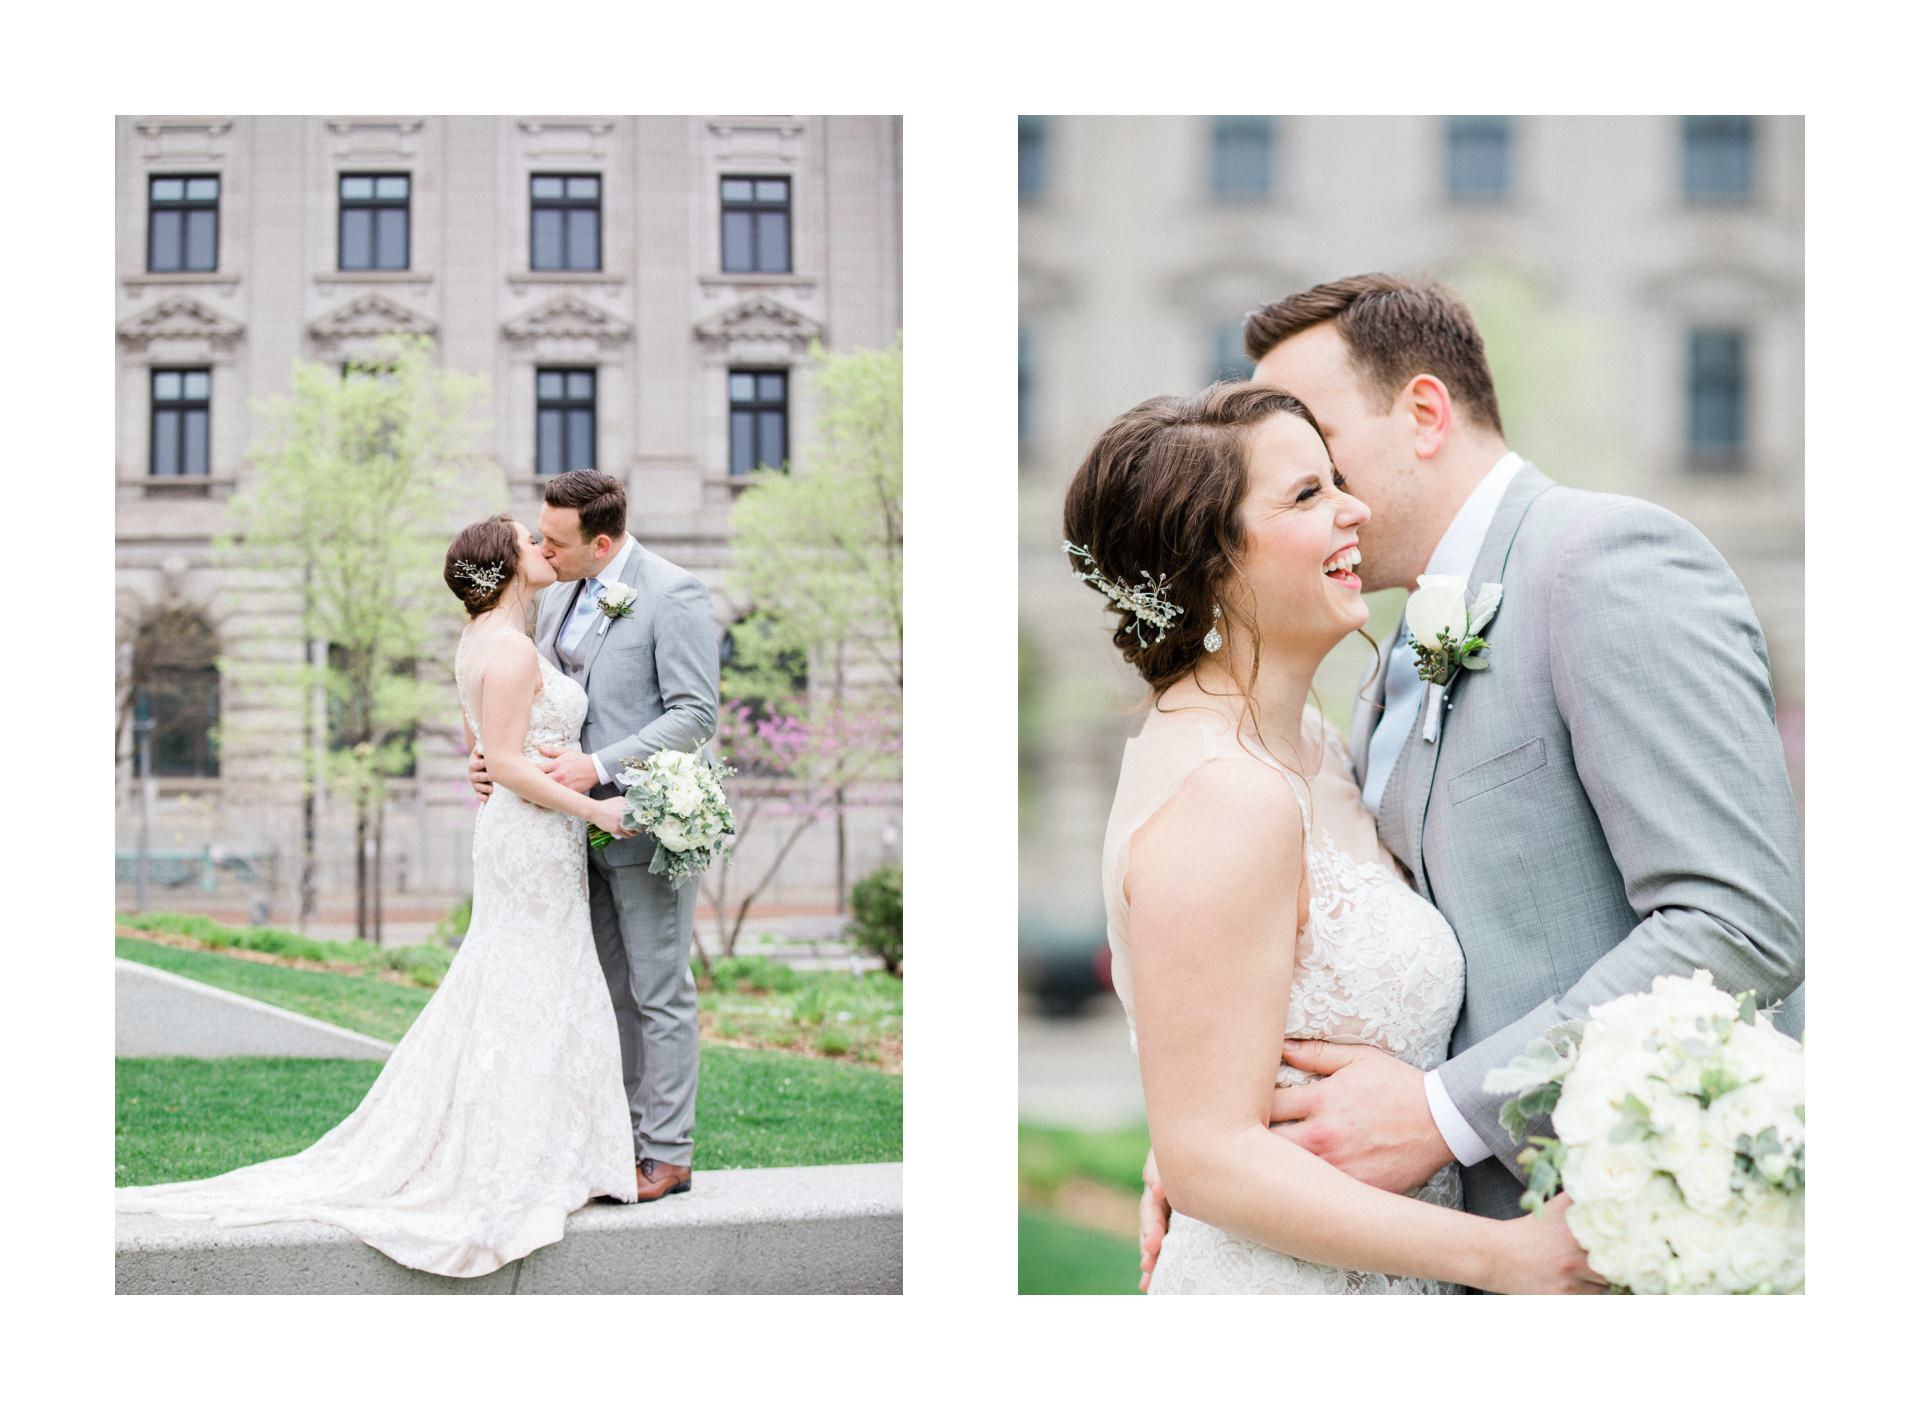 Windows on the River Cleveland Wedding Photographer 1 31.jpg